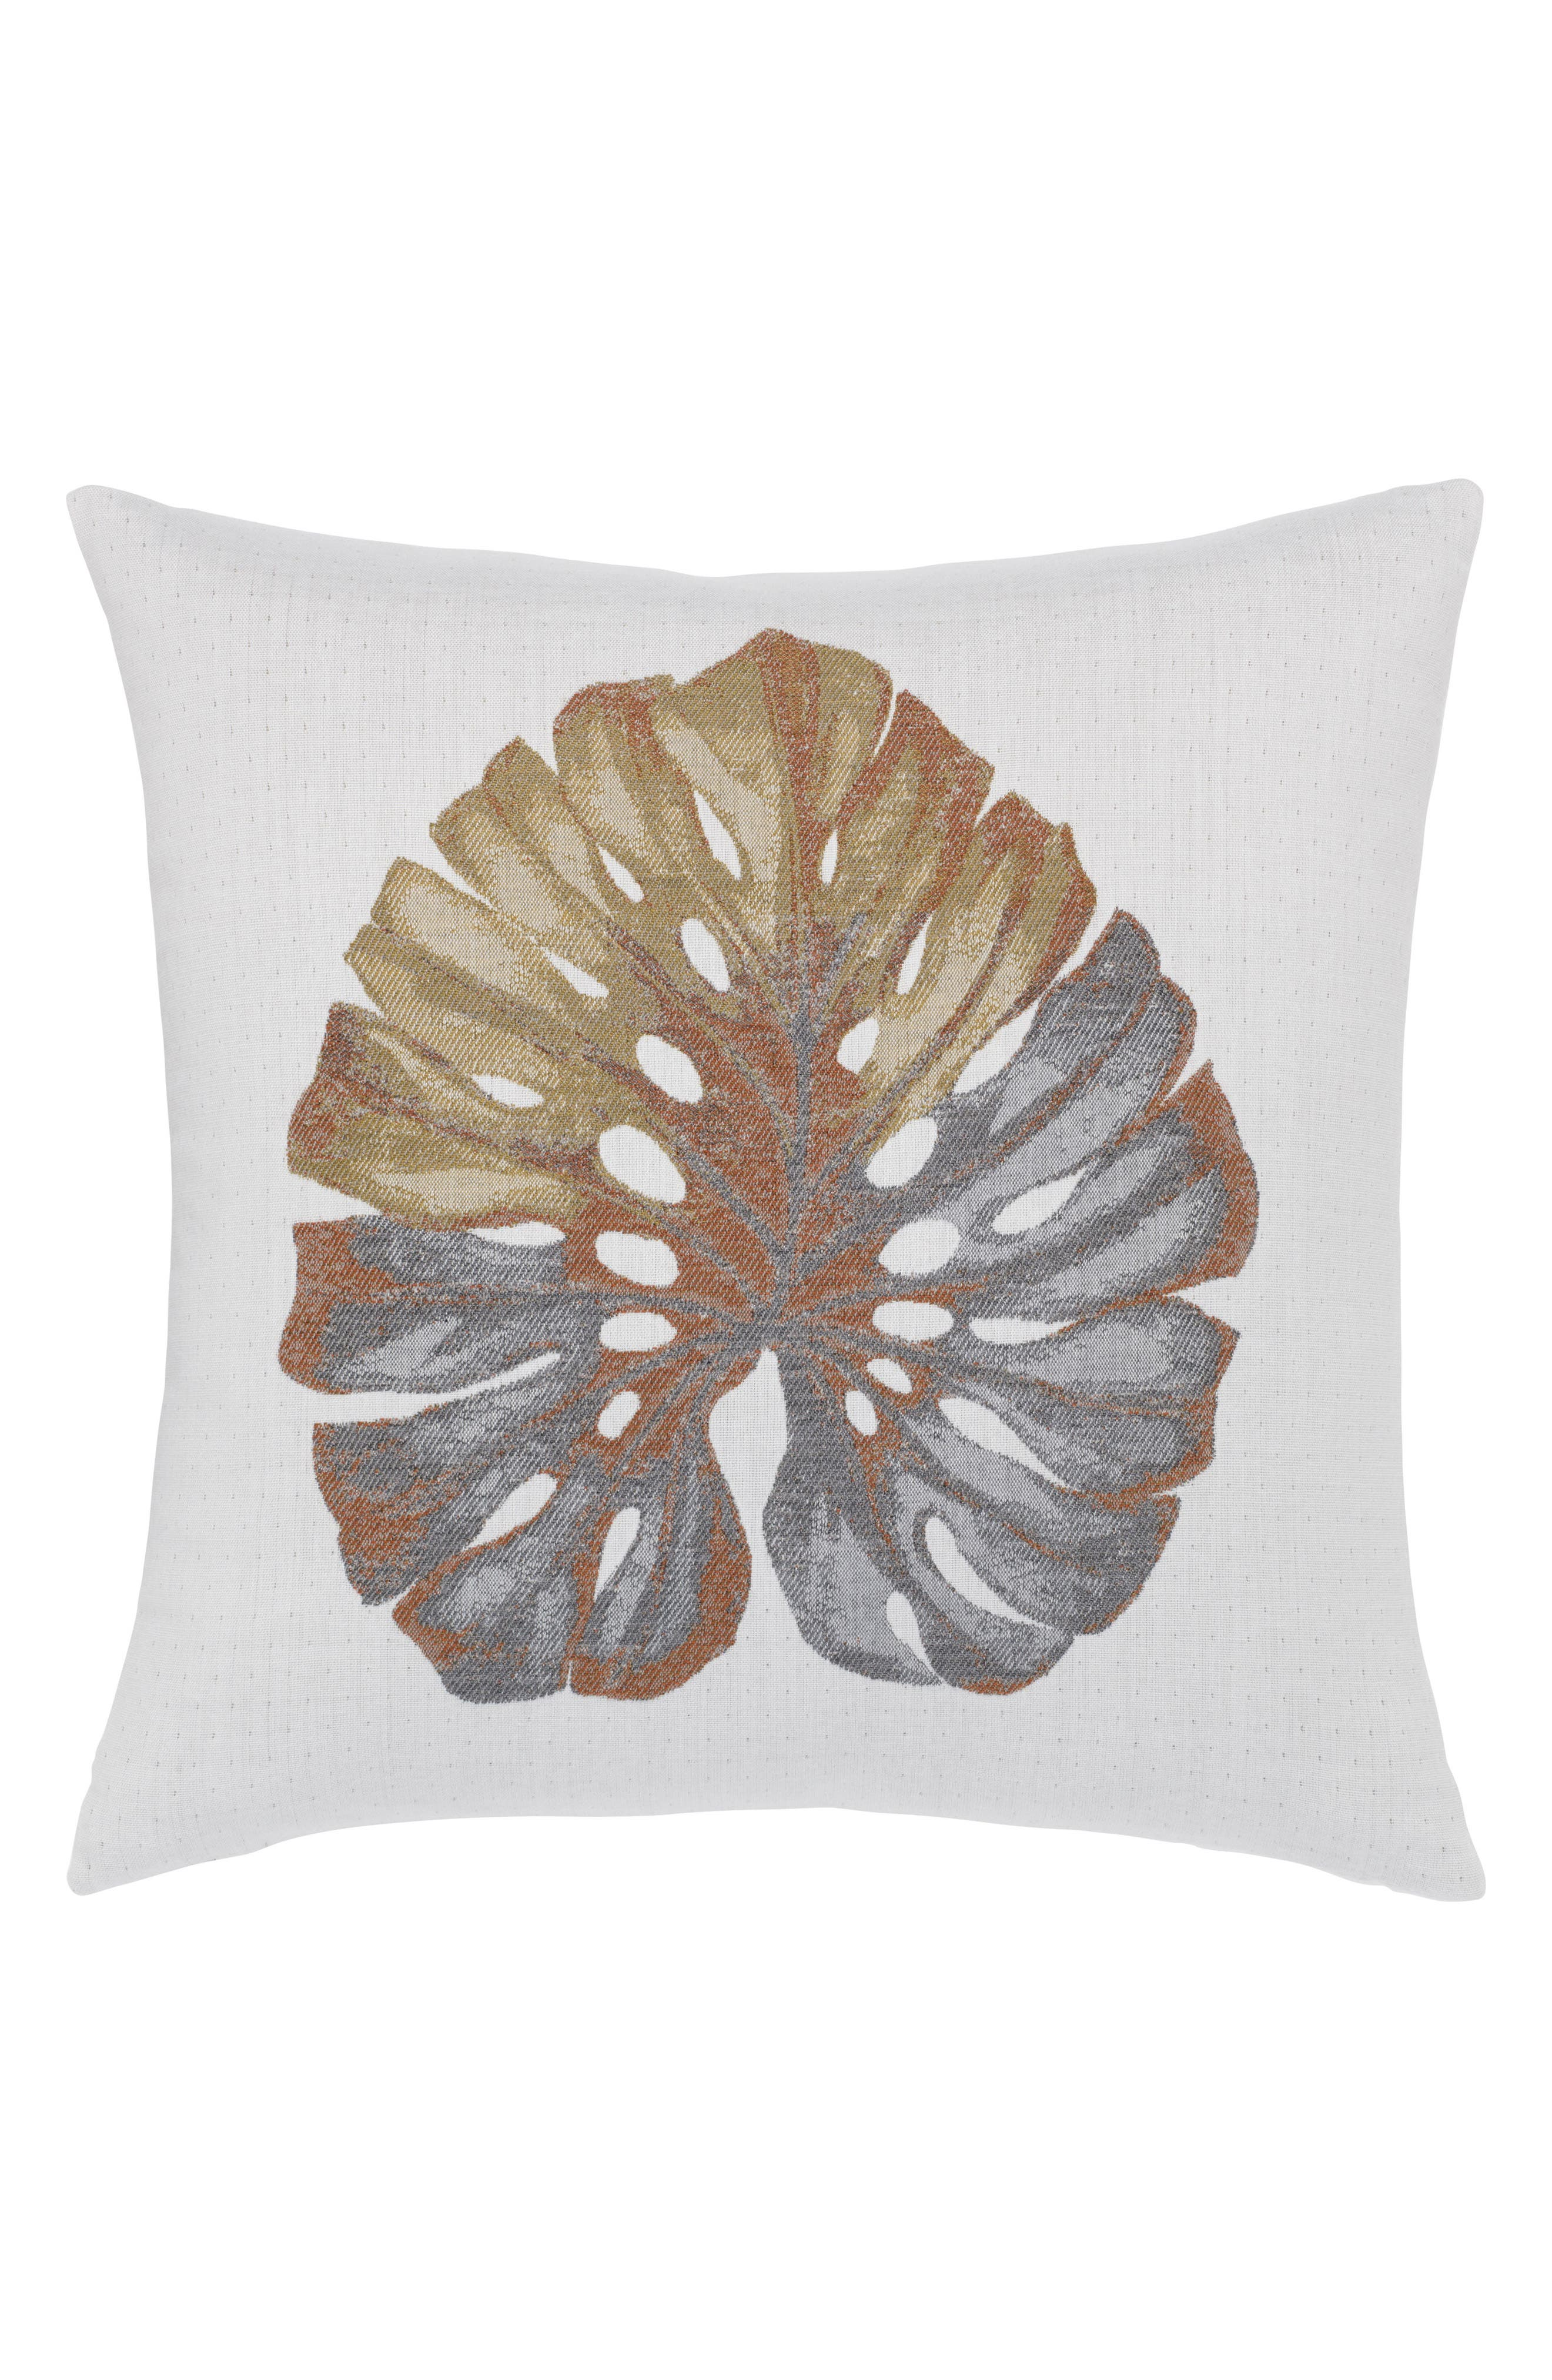 Metallic Leaf Indoor/Outdoor Accent Pillow,                             Main thumbnail 1, color,                             Gold/ Grey